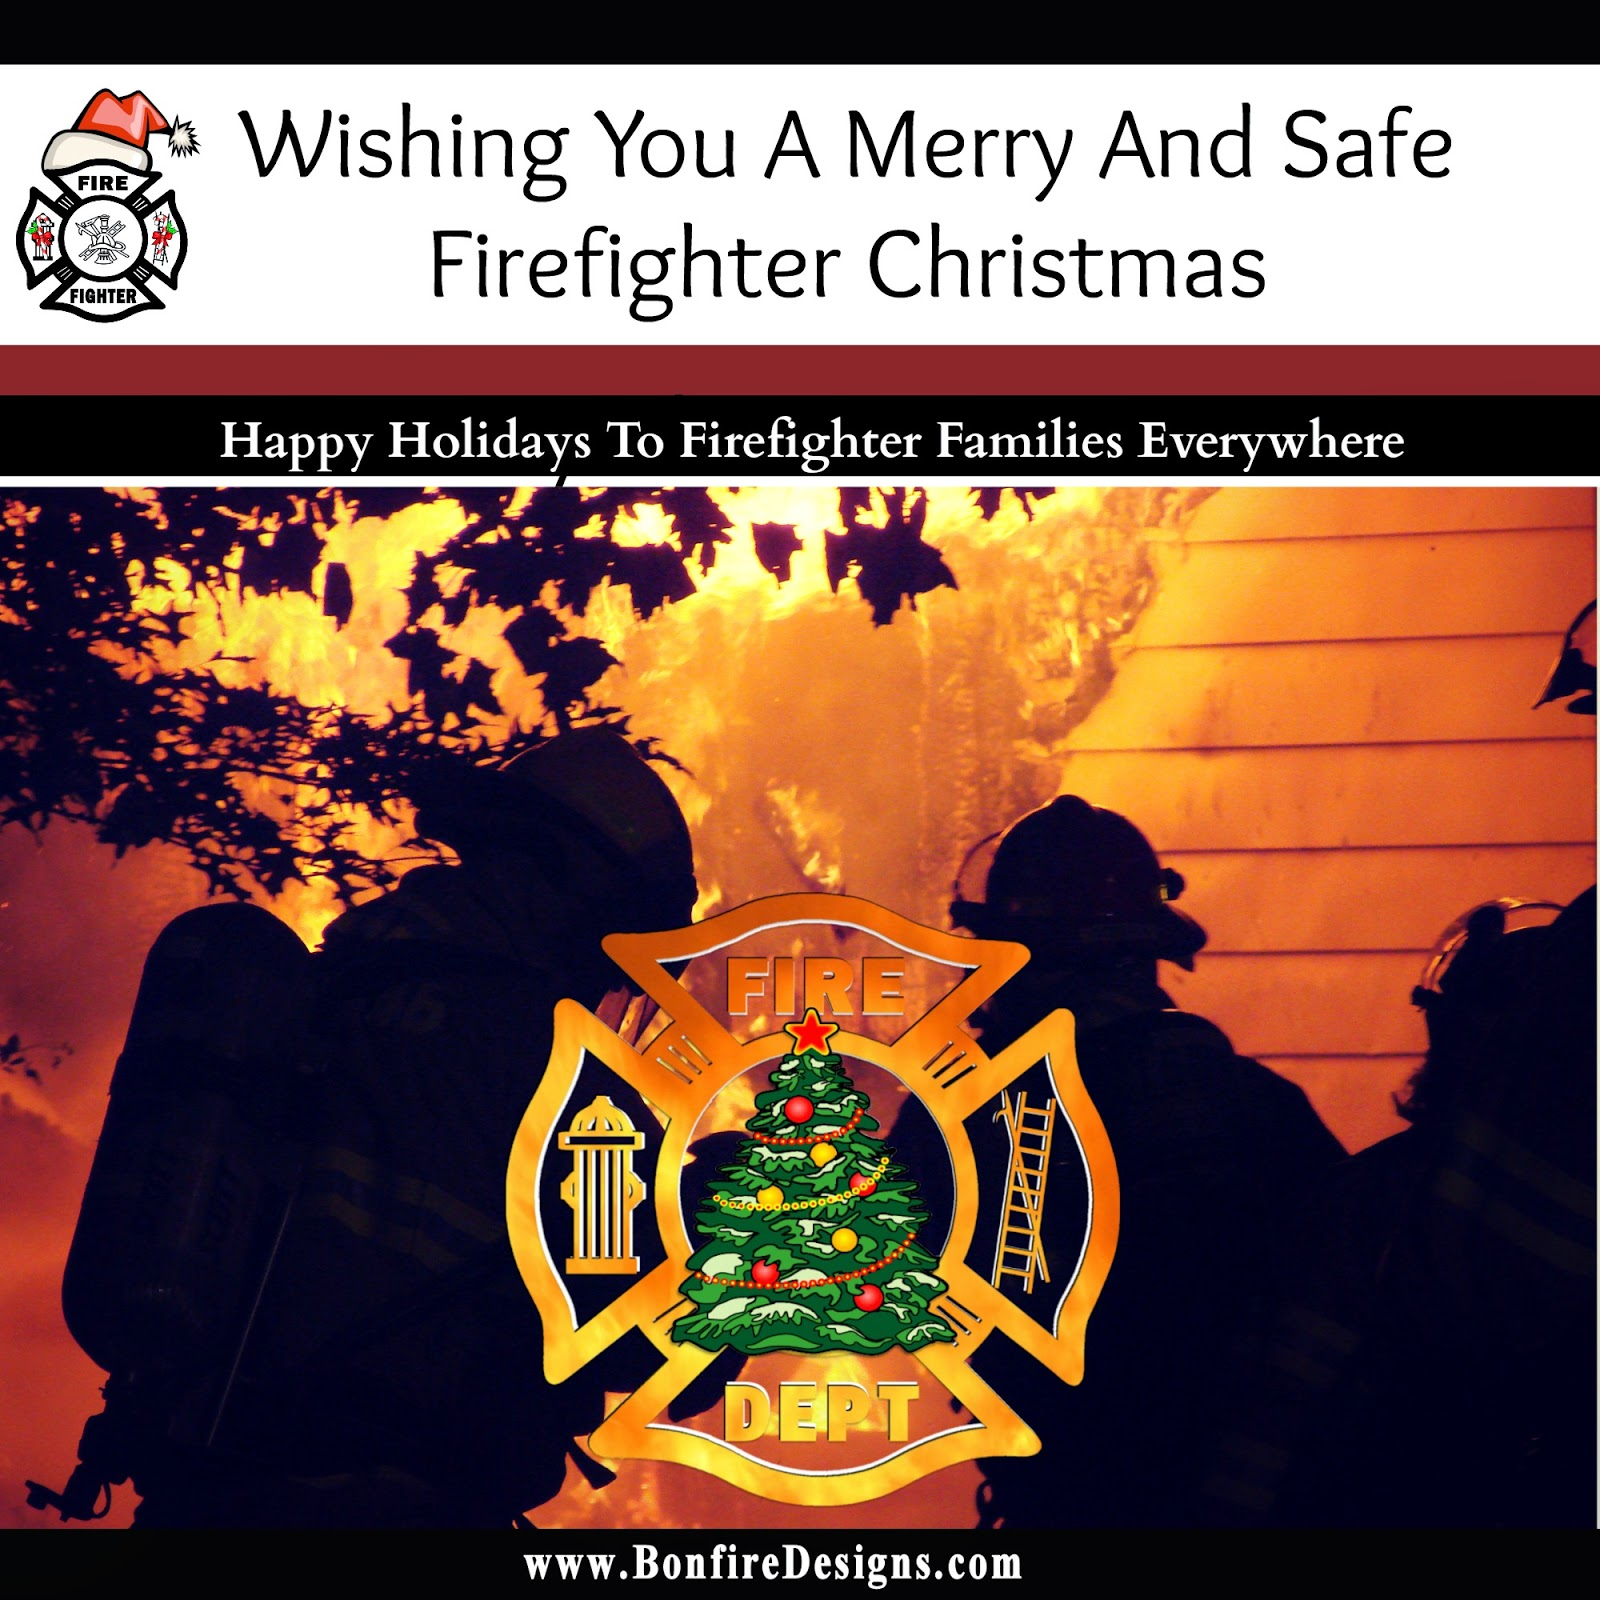 Firefighter Gifts The Brotherhood Bond: Firefighter Christmas Wishes